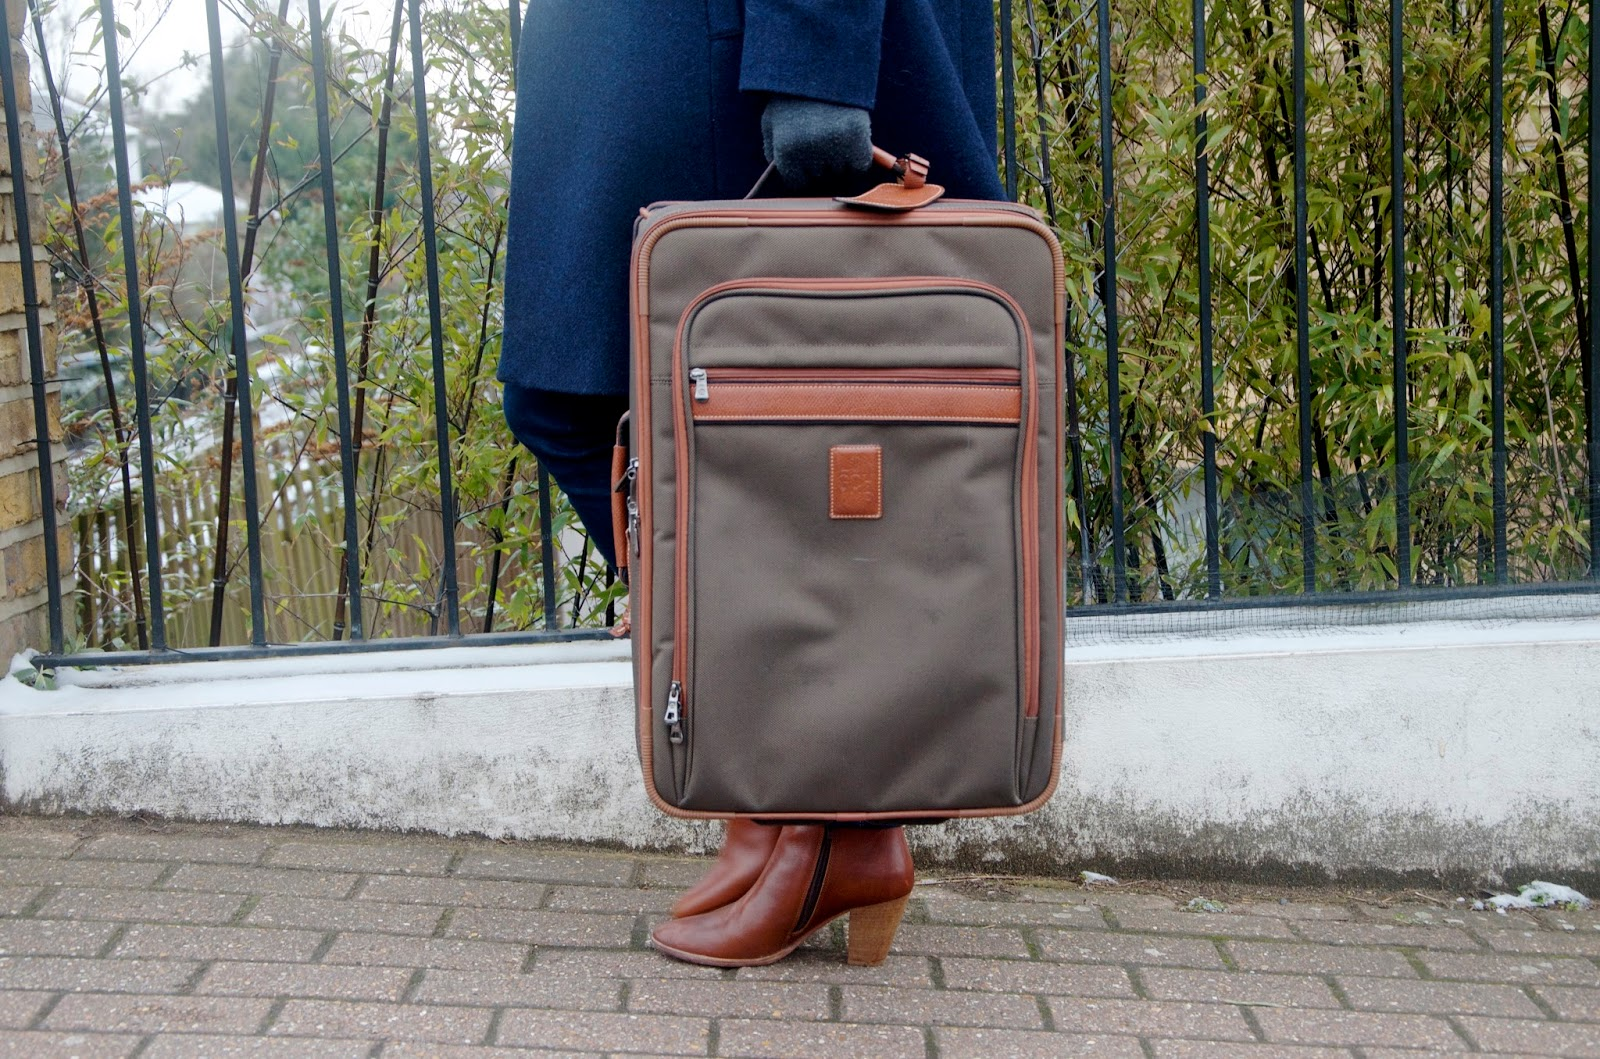 Longchamp suitcase in khaki